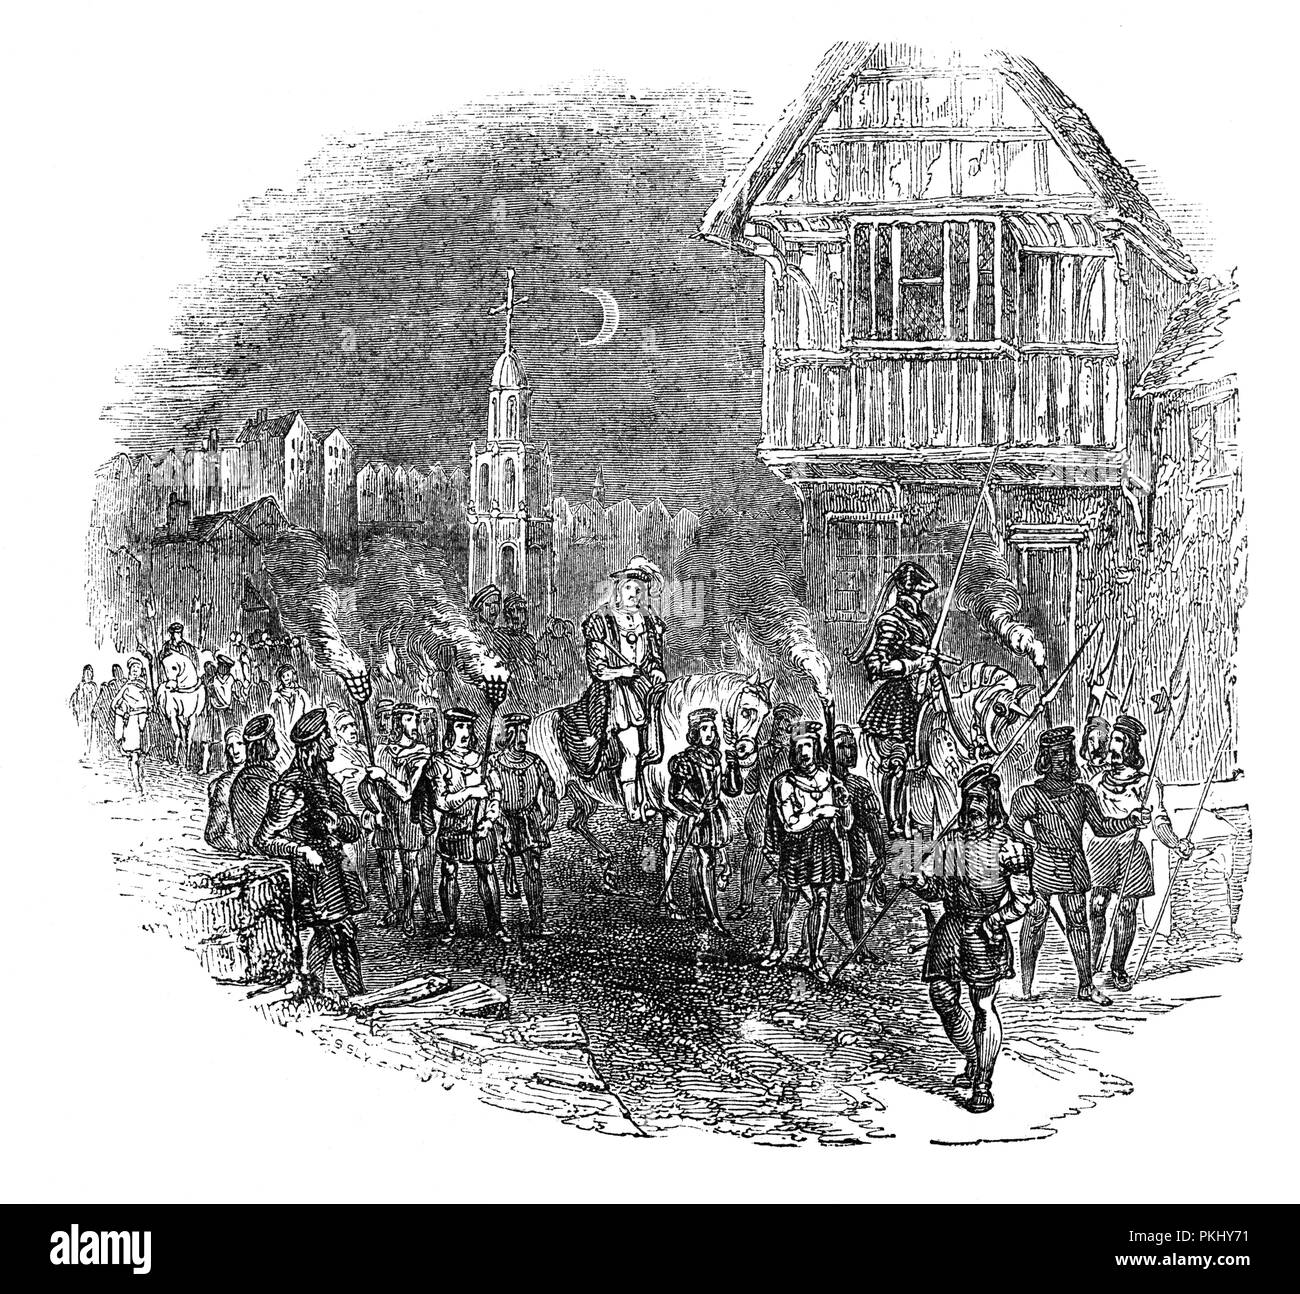 The Grand March, part of the Medieval Watch of Midsummers Eve. The march comprised some 2,000 men, both mounted and on foot, comprising of gunners, archers, pike men. They were followed by the Constables of the Watch in full armour, accompanied by minstrels and morris dancers, and finally the mayor. It was cancelled by King Henry VIII and the saved cost of the pageant put towrds the watchmen. - Stock Image